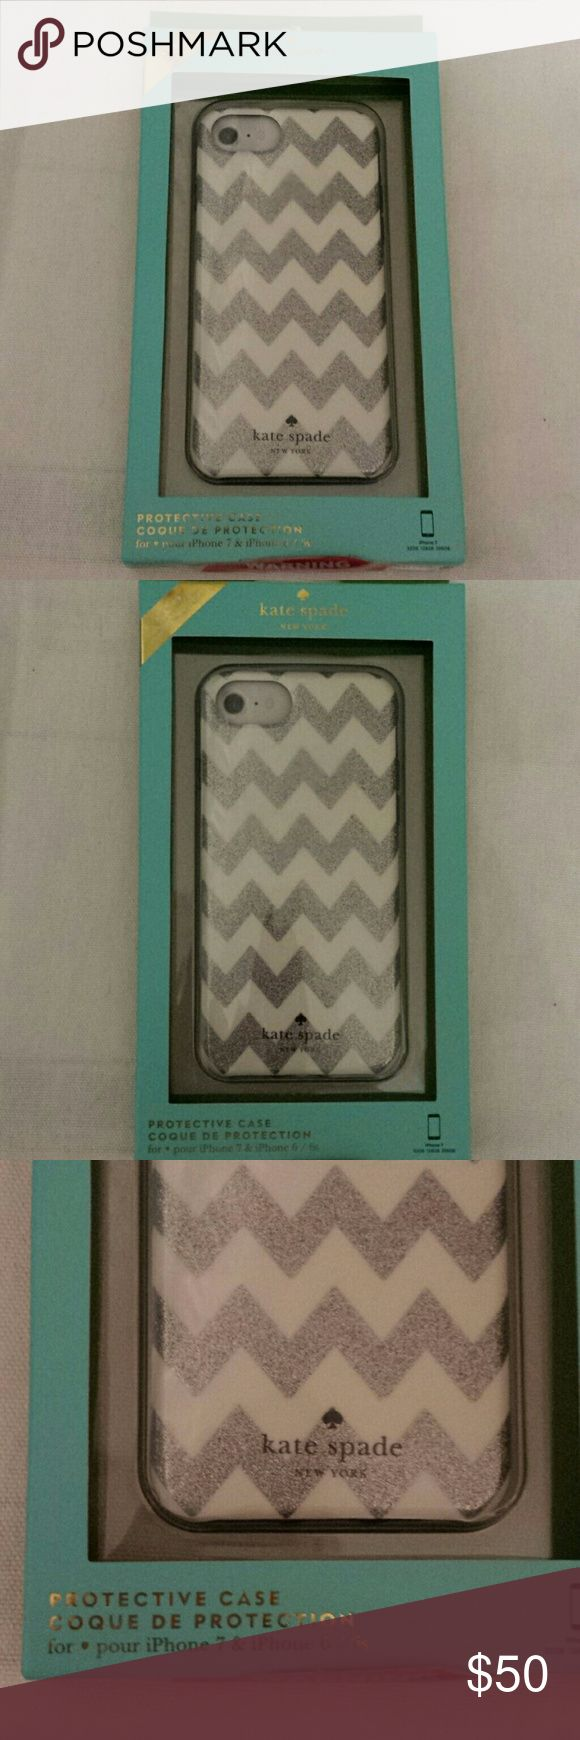 Kate Spade NWT Silver Glitter Chevron IPhone Case Kate Spade NWT Silver Glitter Chevron Protective Case, for IPhone 7and 6/6s, new in box Kate Spade Accessories Phone Cases